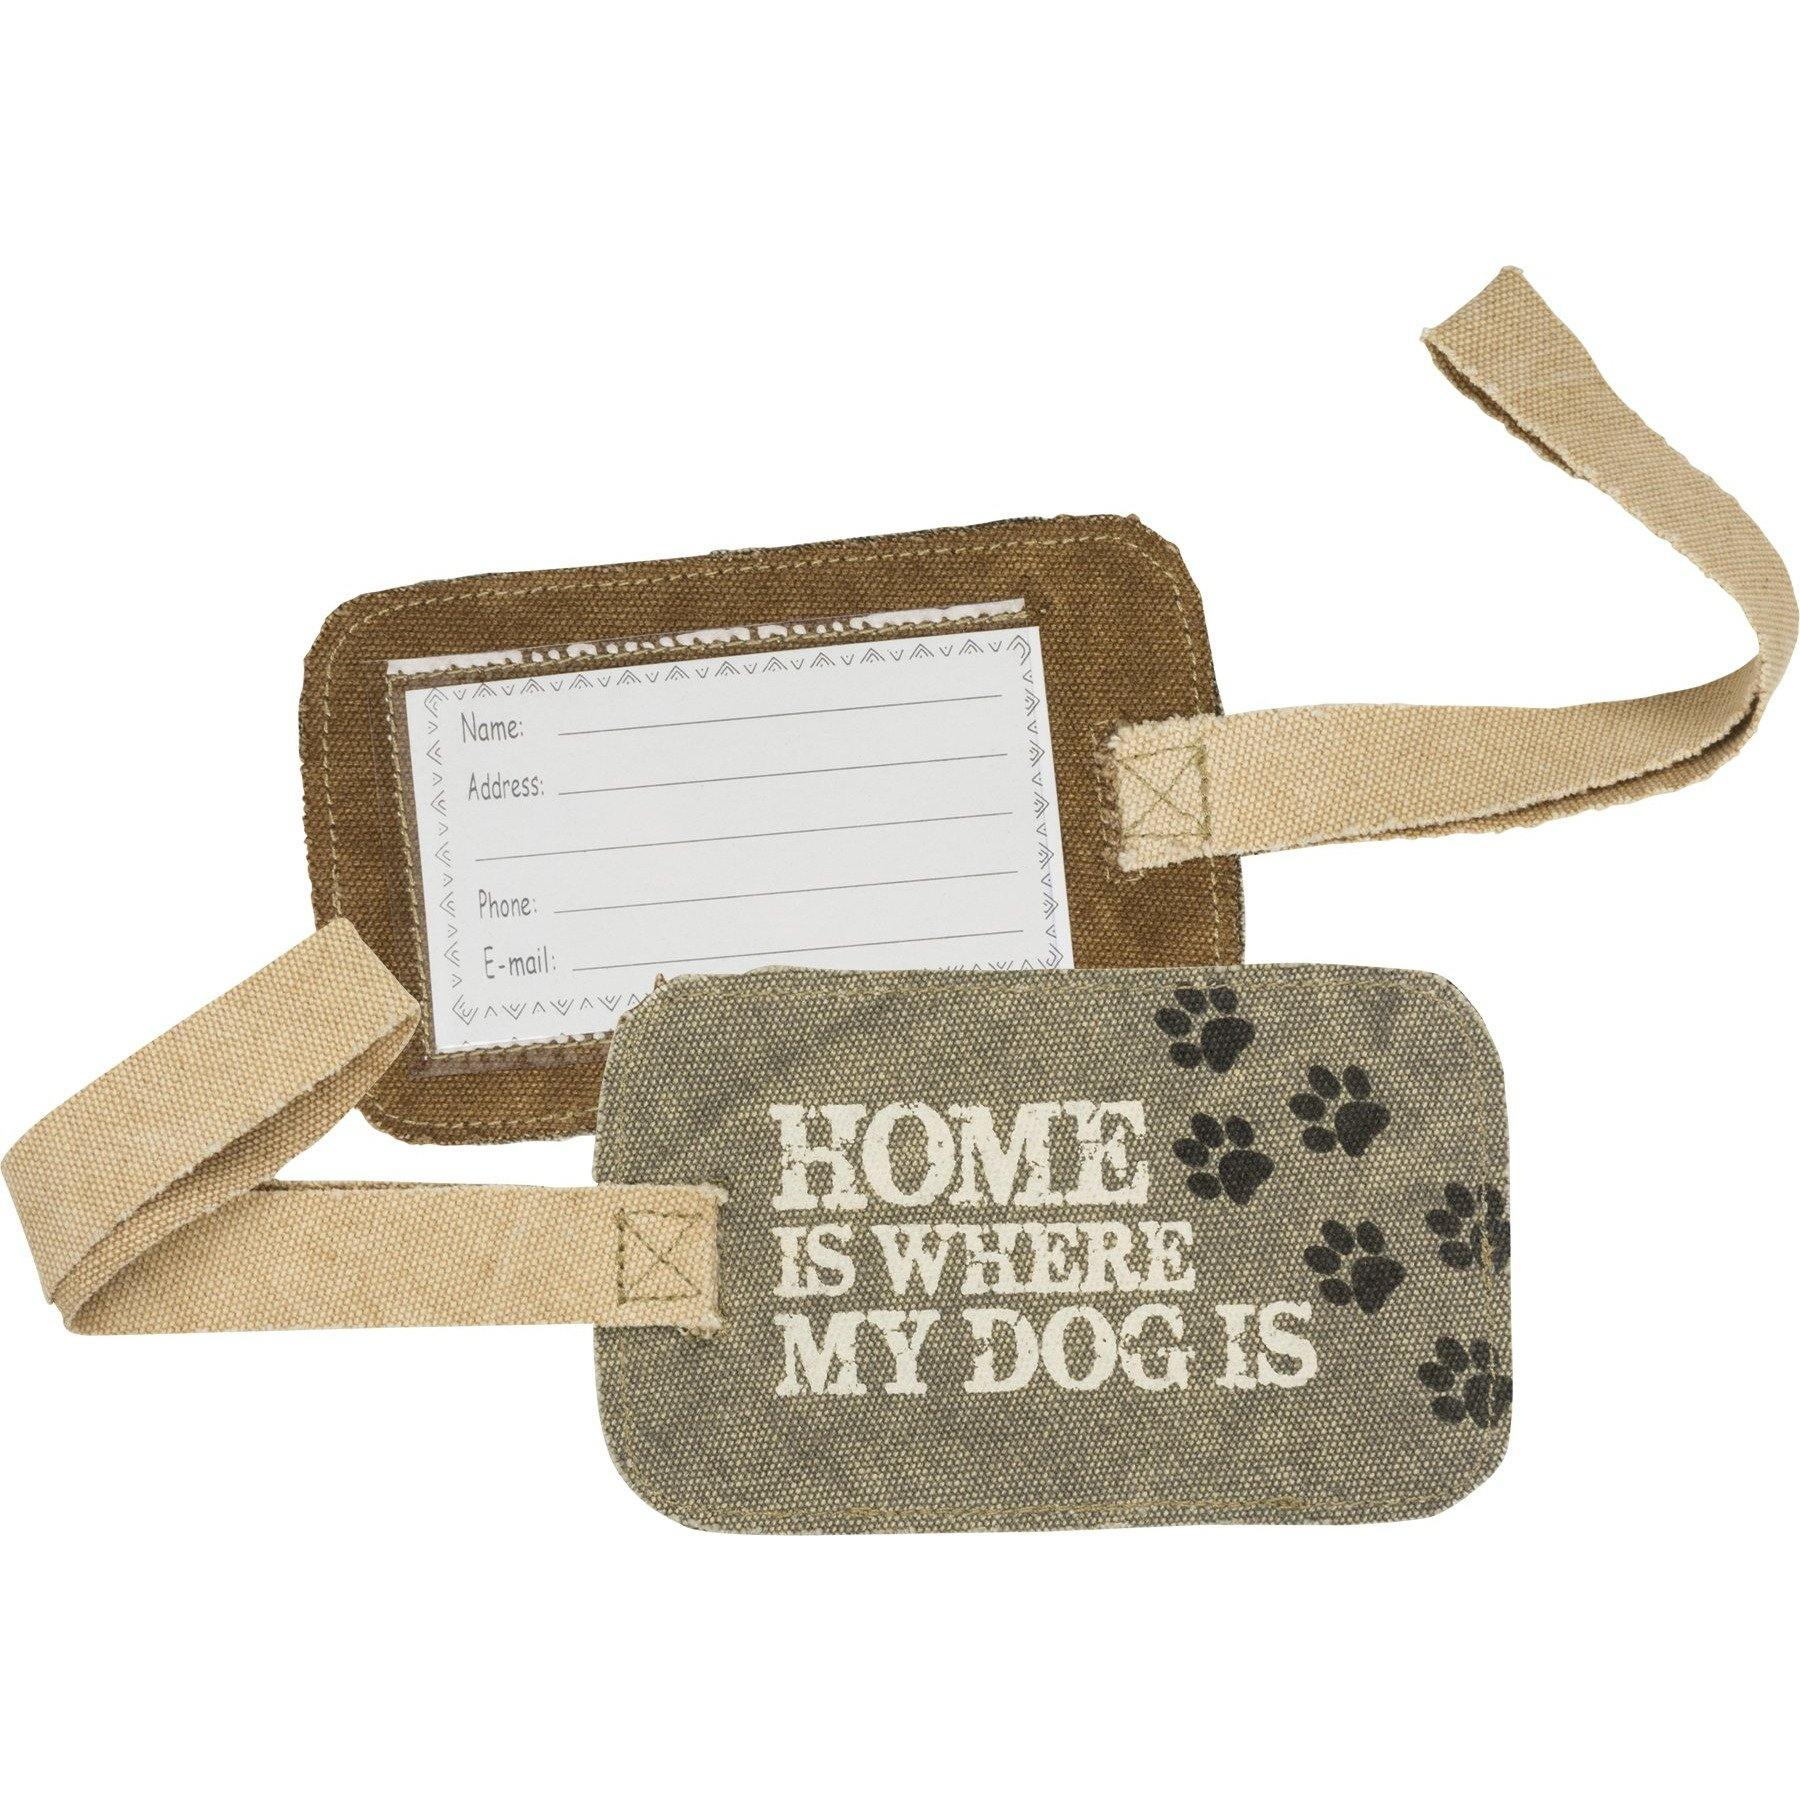 Primitives By Kathy - Home Is Where My Dog Is - Luggage Tag